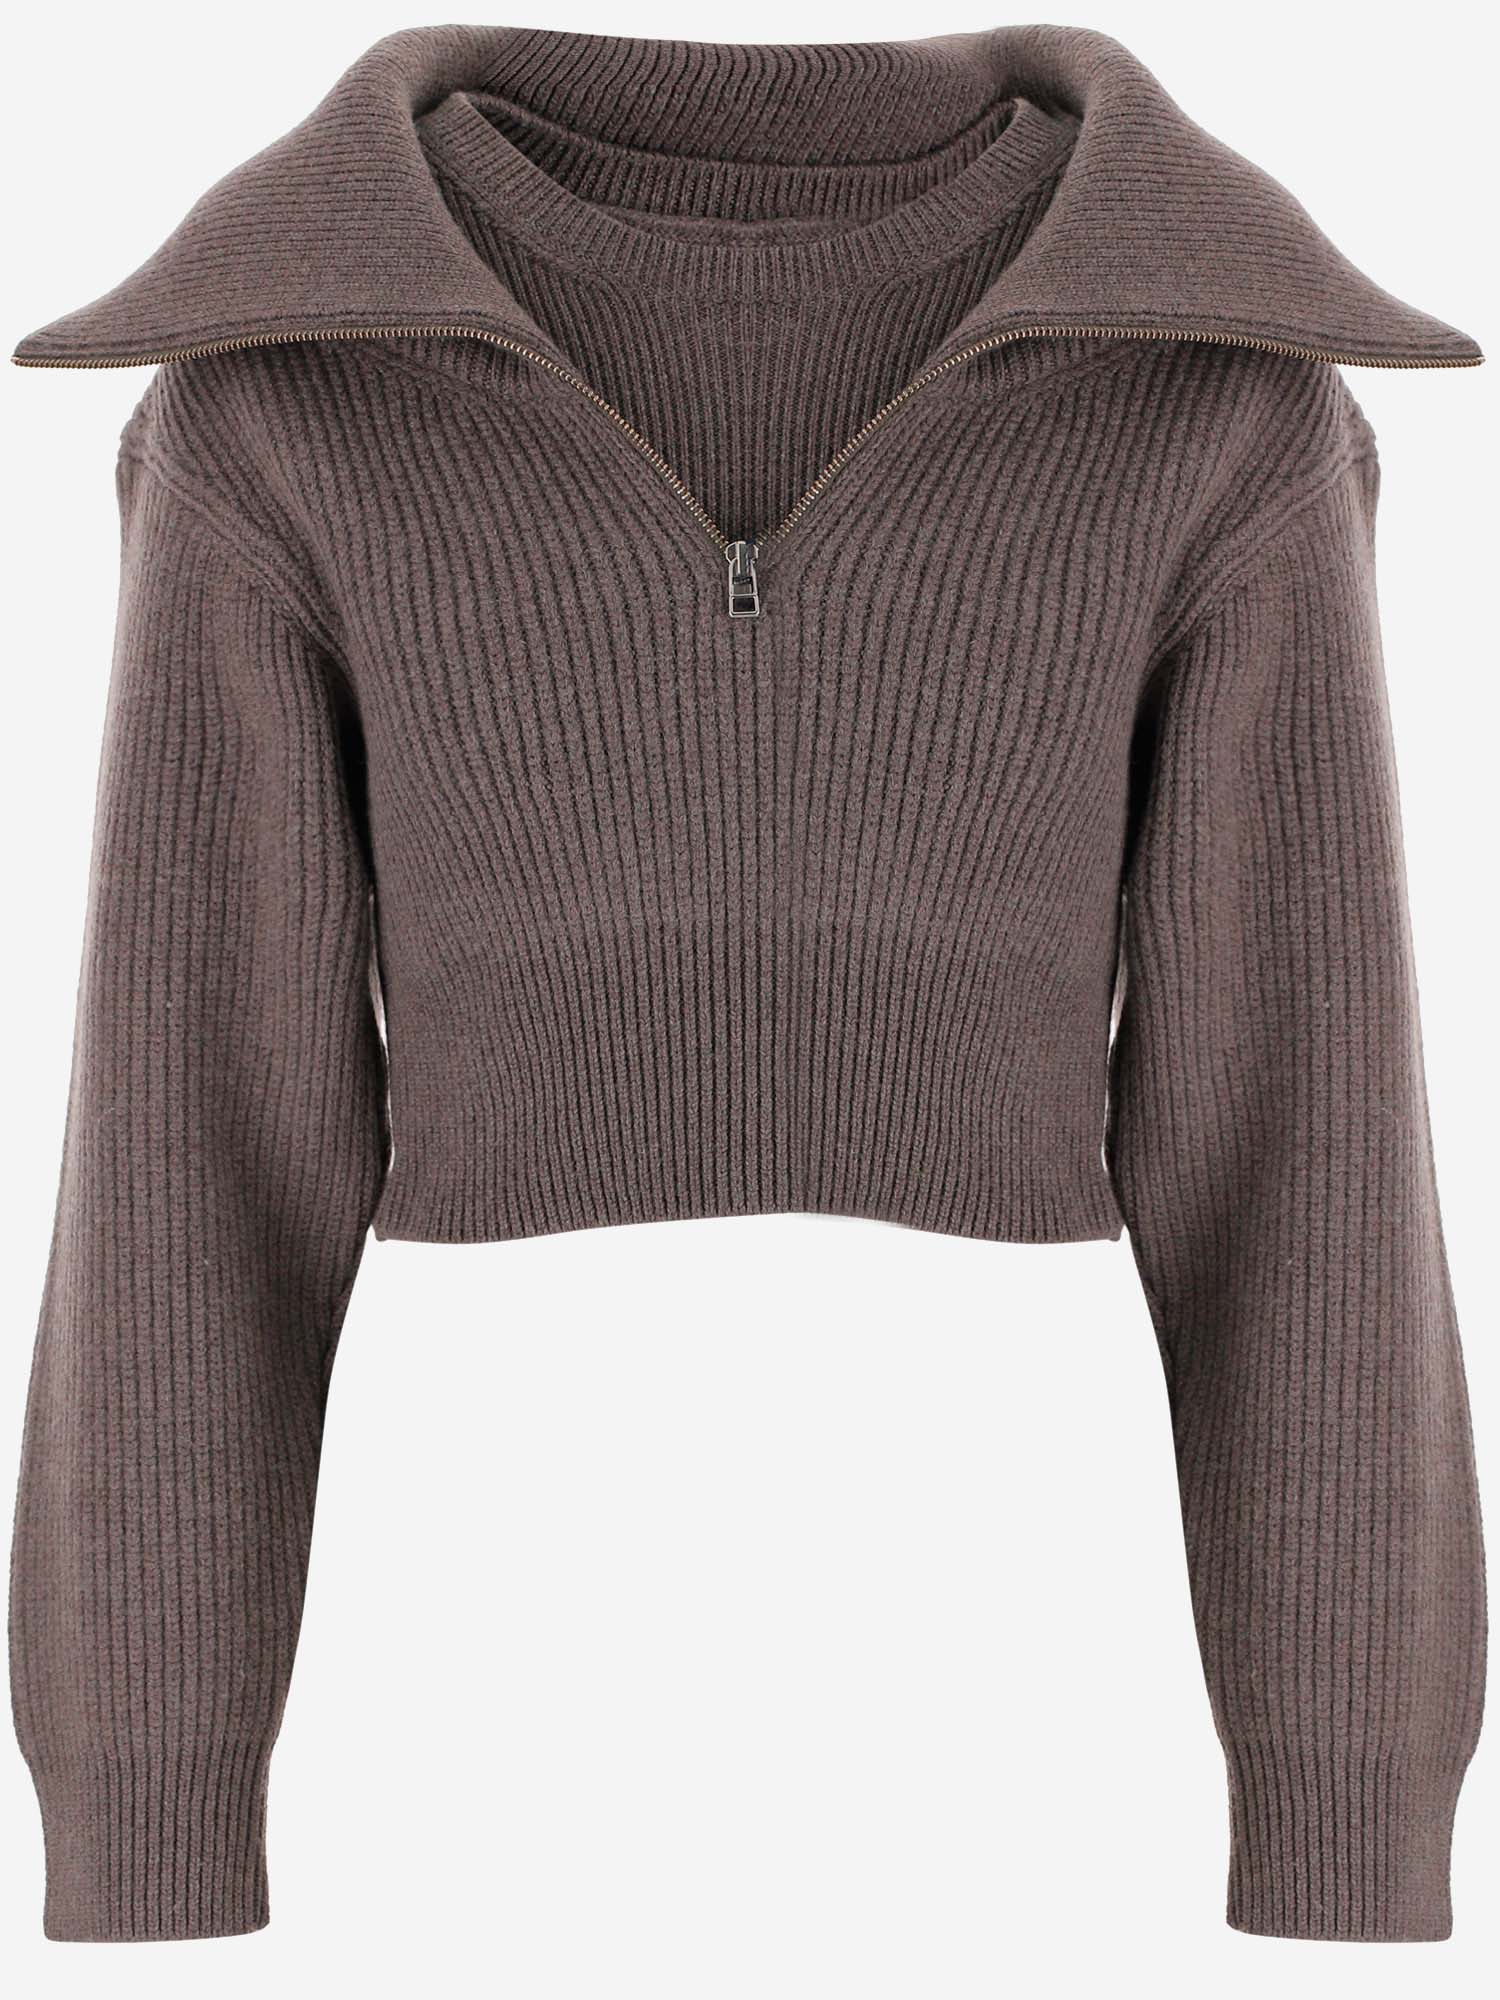 JACQUEMUS JACQUEMUS RISOUL ZIPPED SWEATER